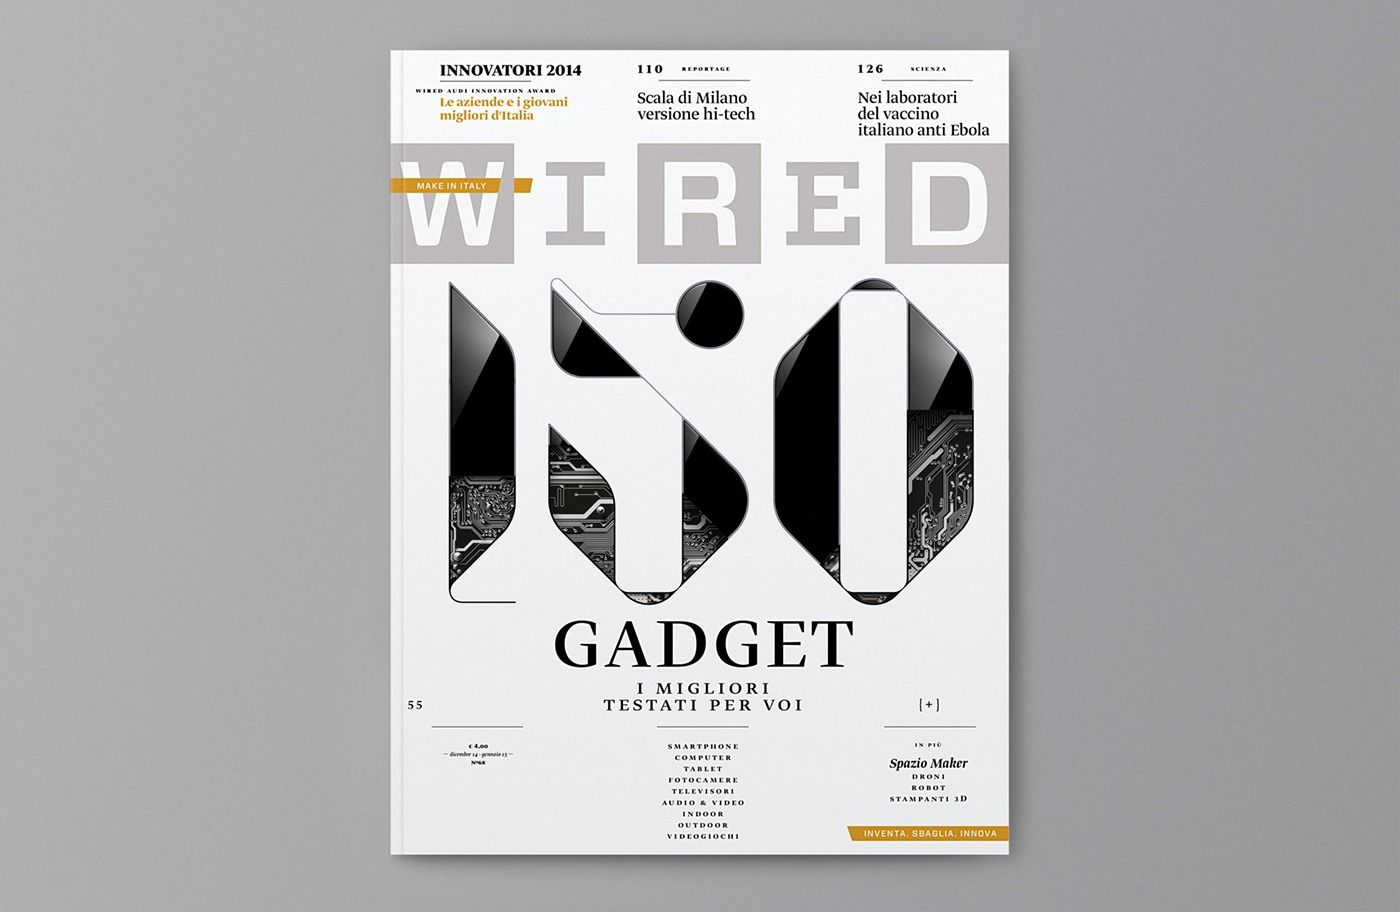 Old Fashioned Anime Magazine Cover Wired Pattern - Wiring Standart ...